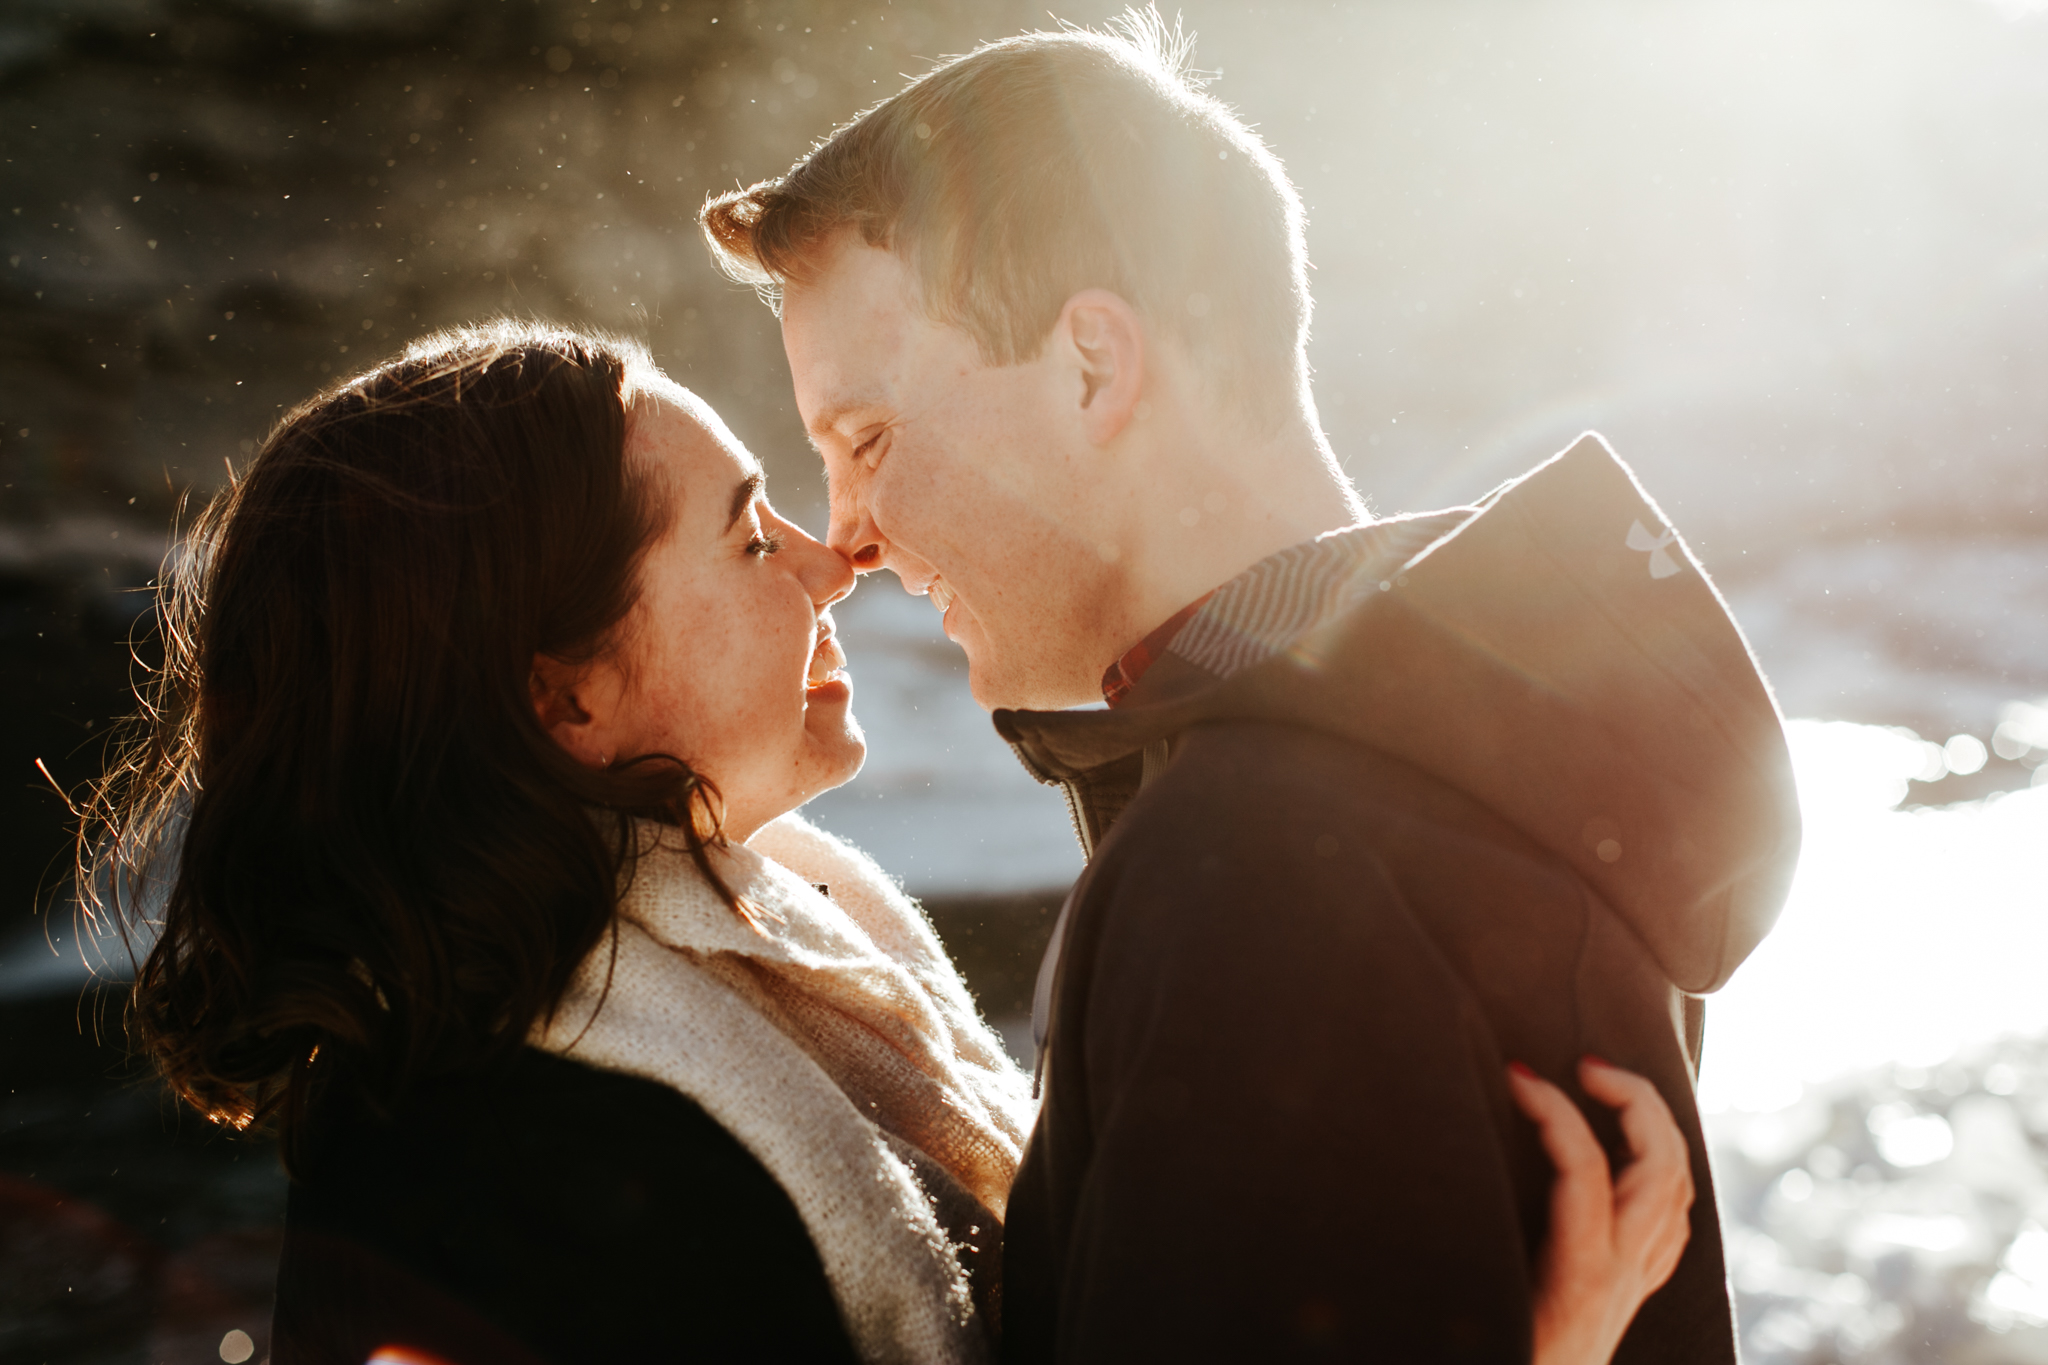 lethbridge-photographer-love-and-be-loved-photography-lundbreck-falls-engagement-clarissa-clayton-picture-image-photo--16.jpg